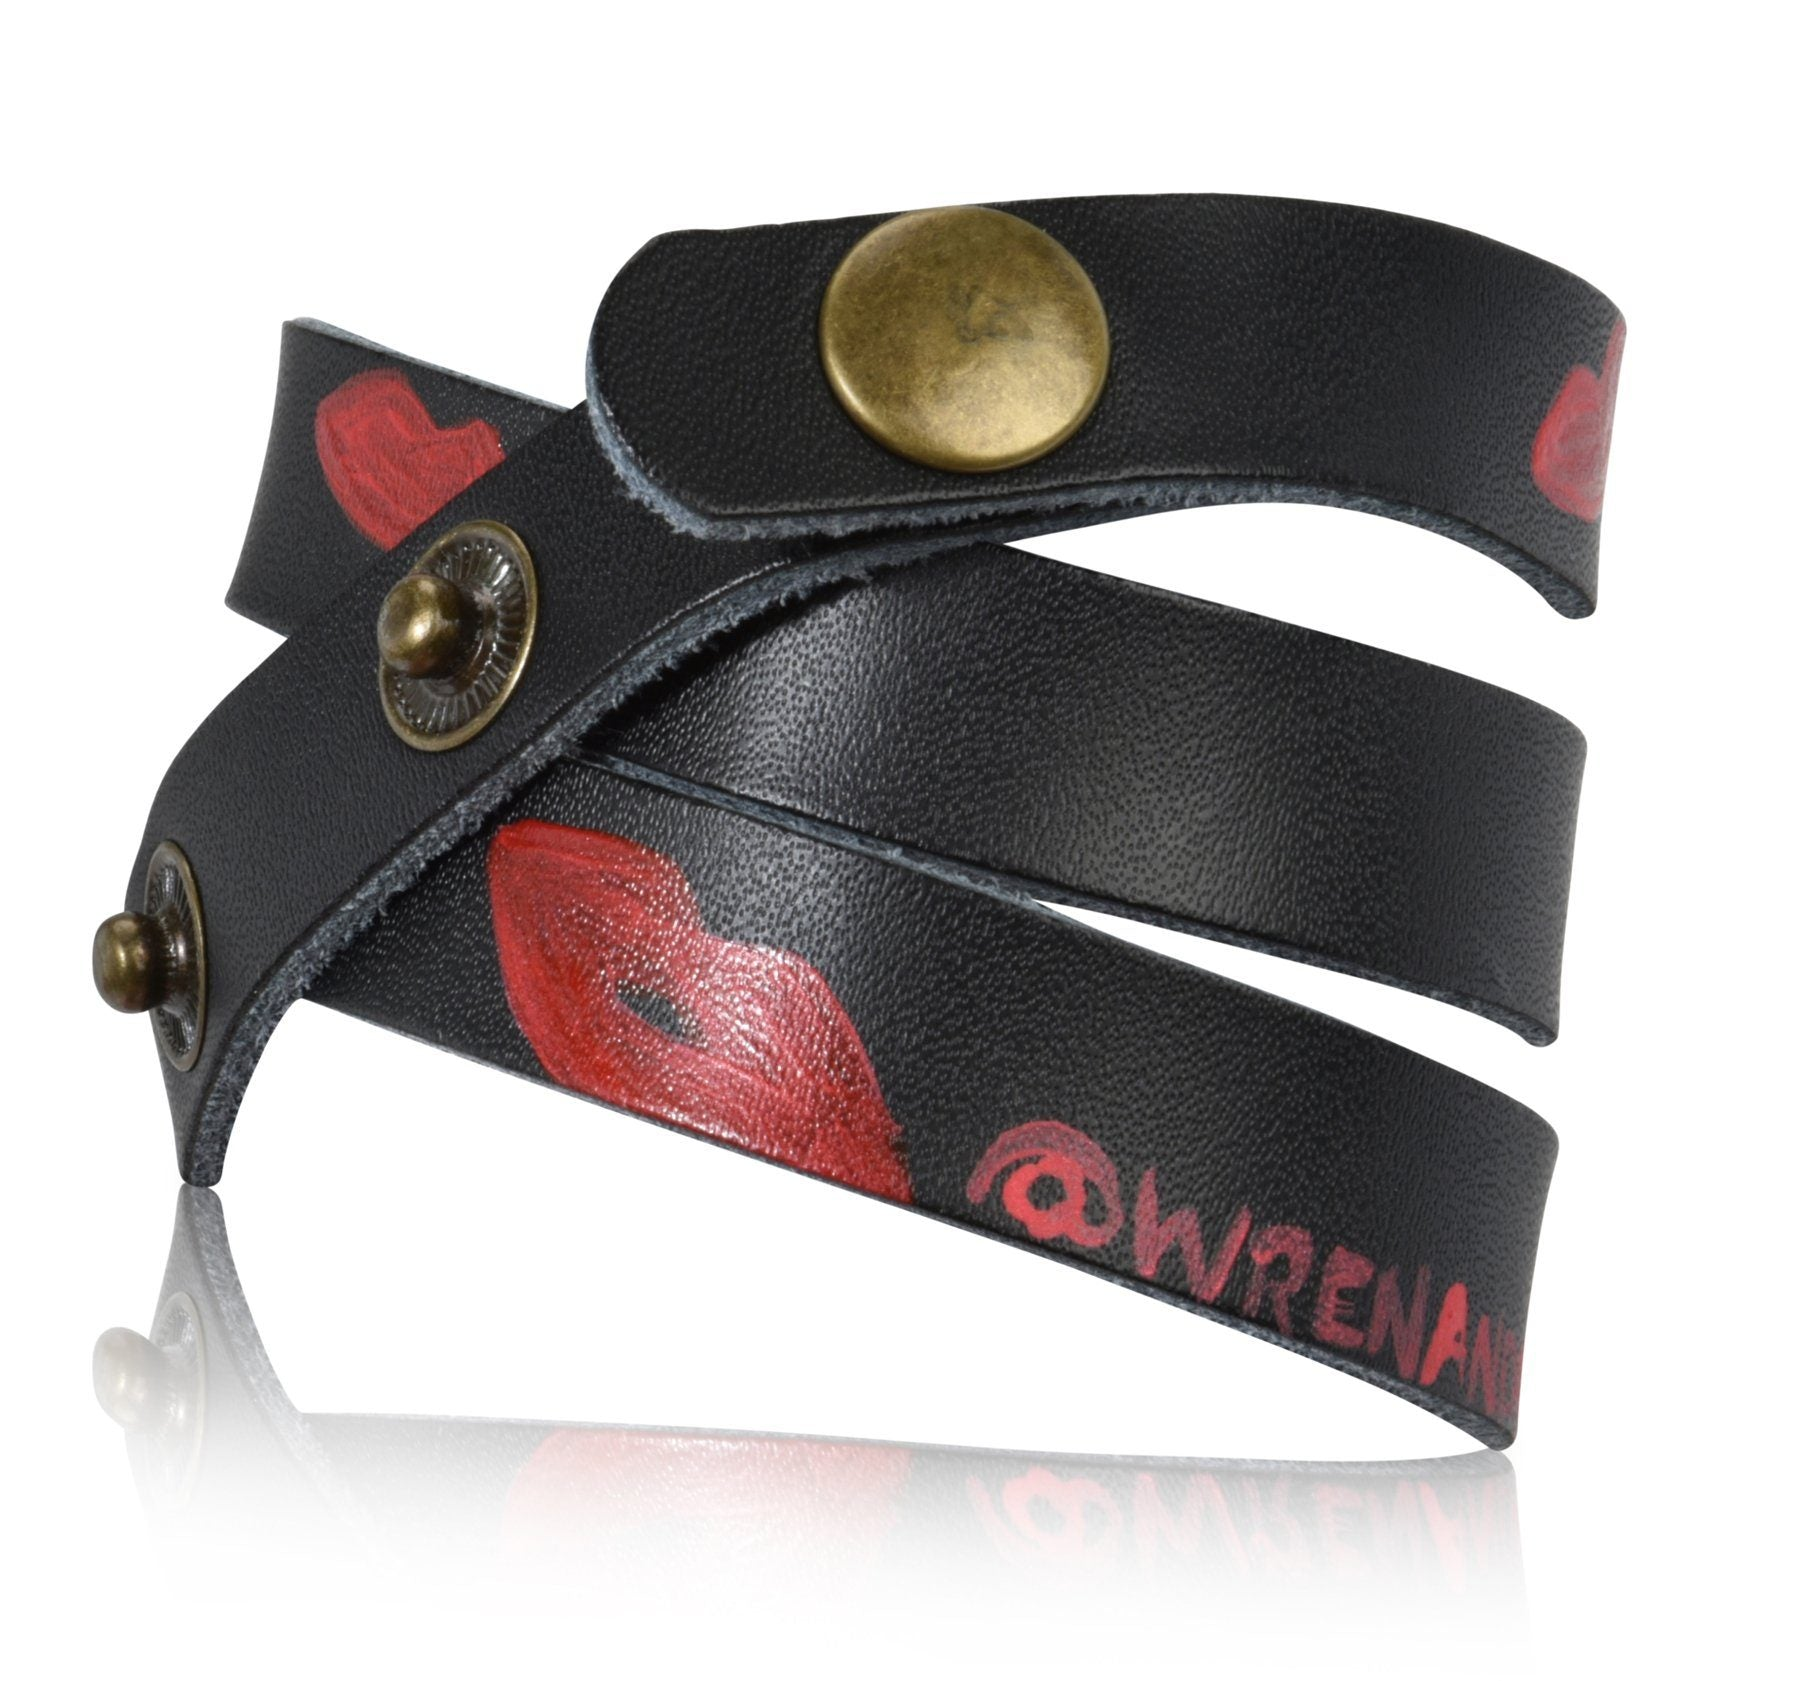 'WE ARE THE REVOLUTION' PAINTED LEATHER BRACELET